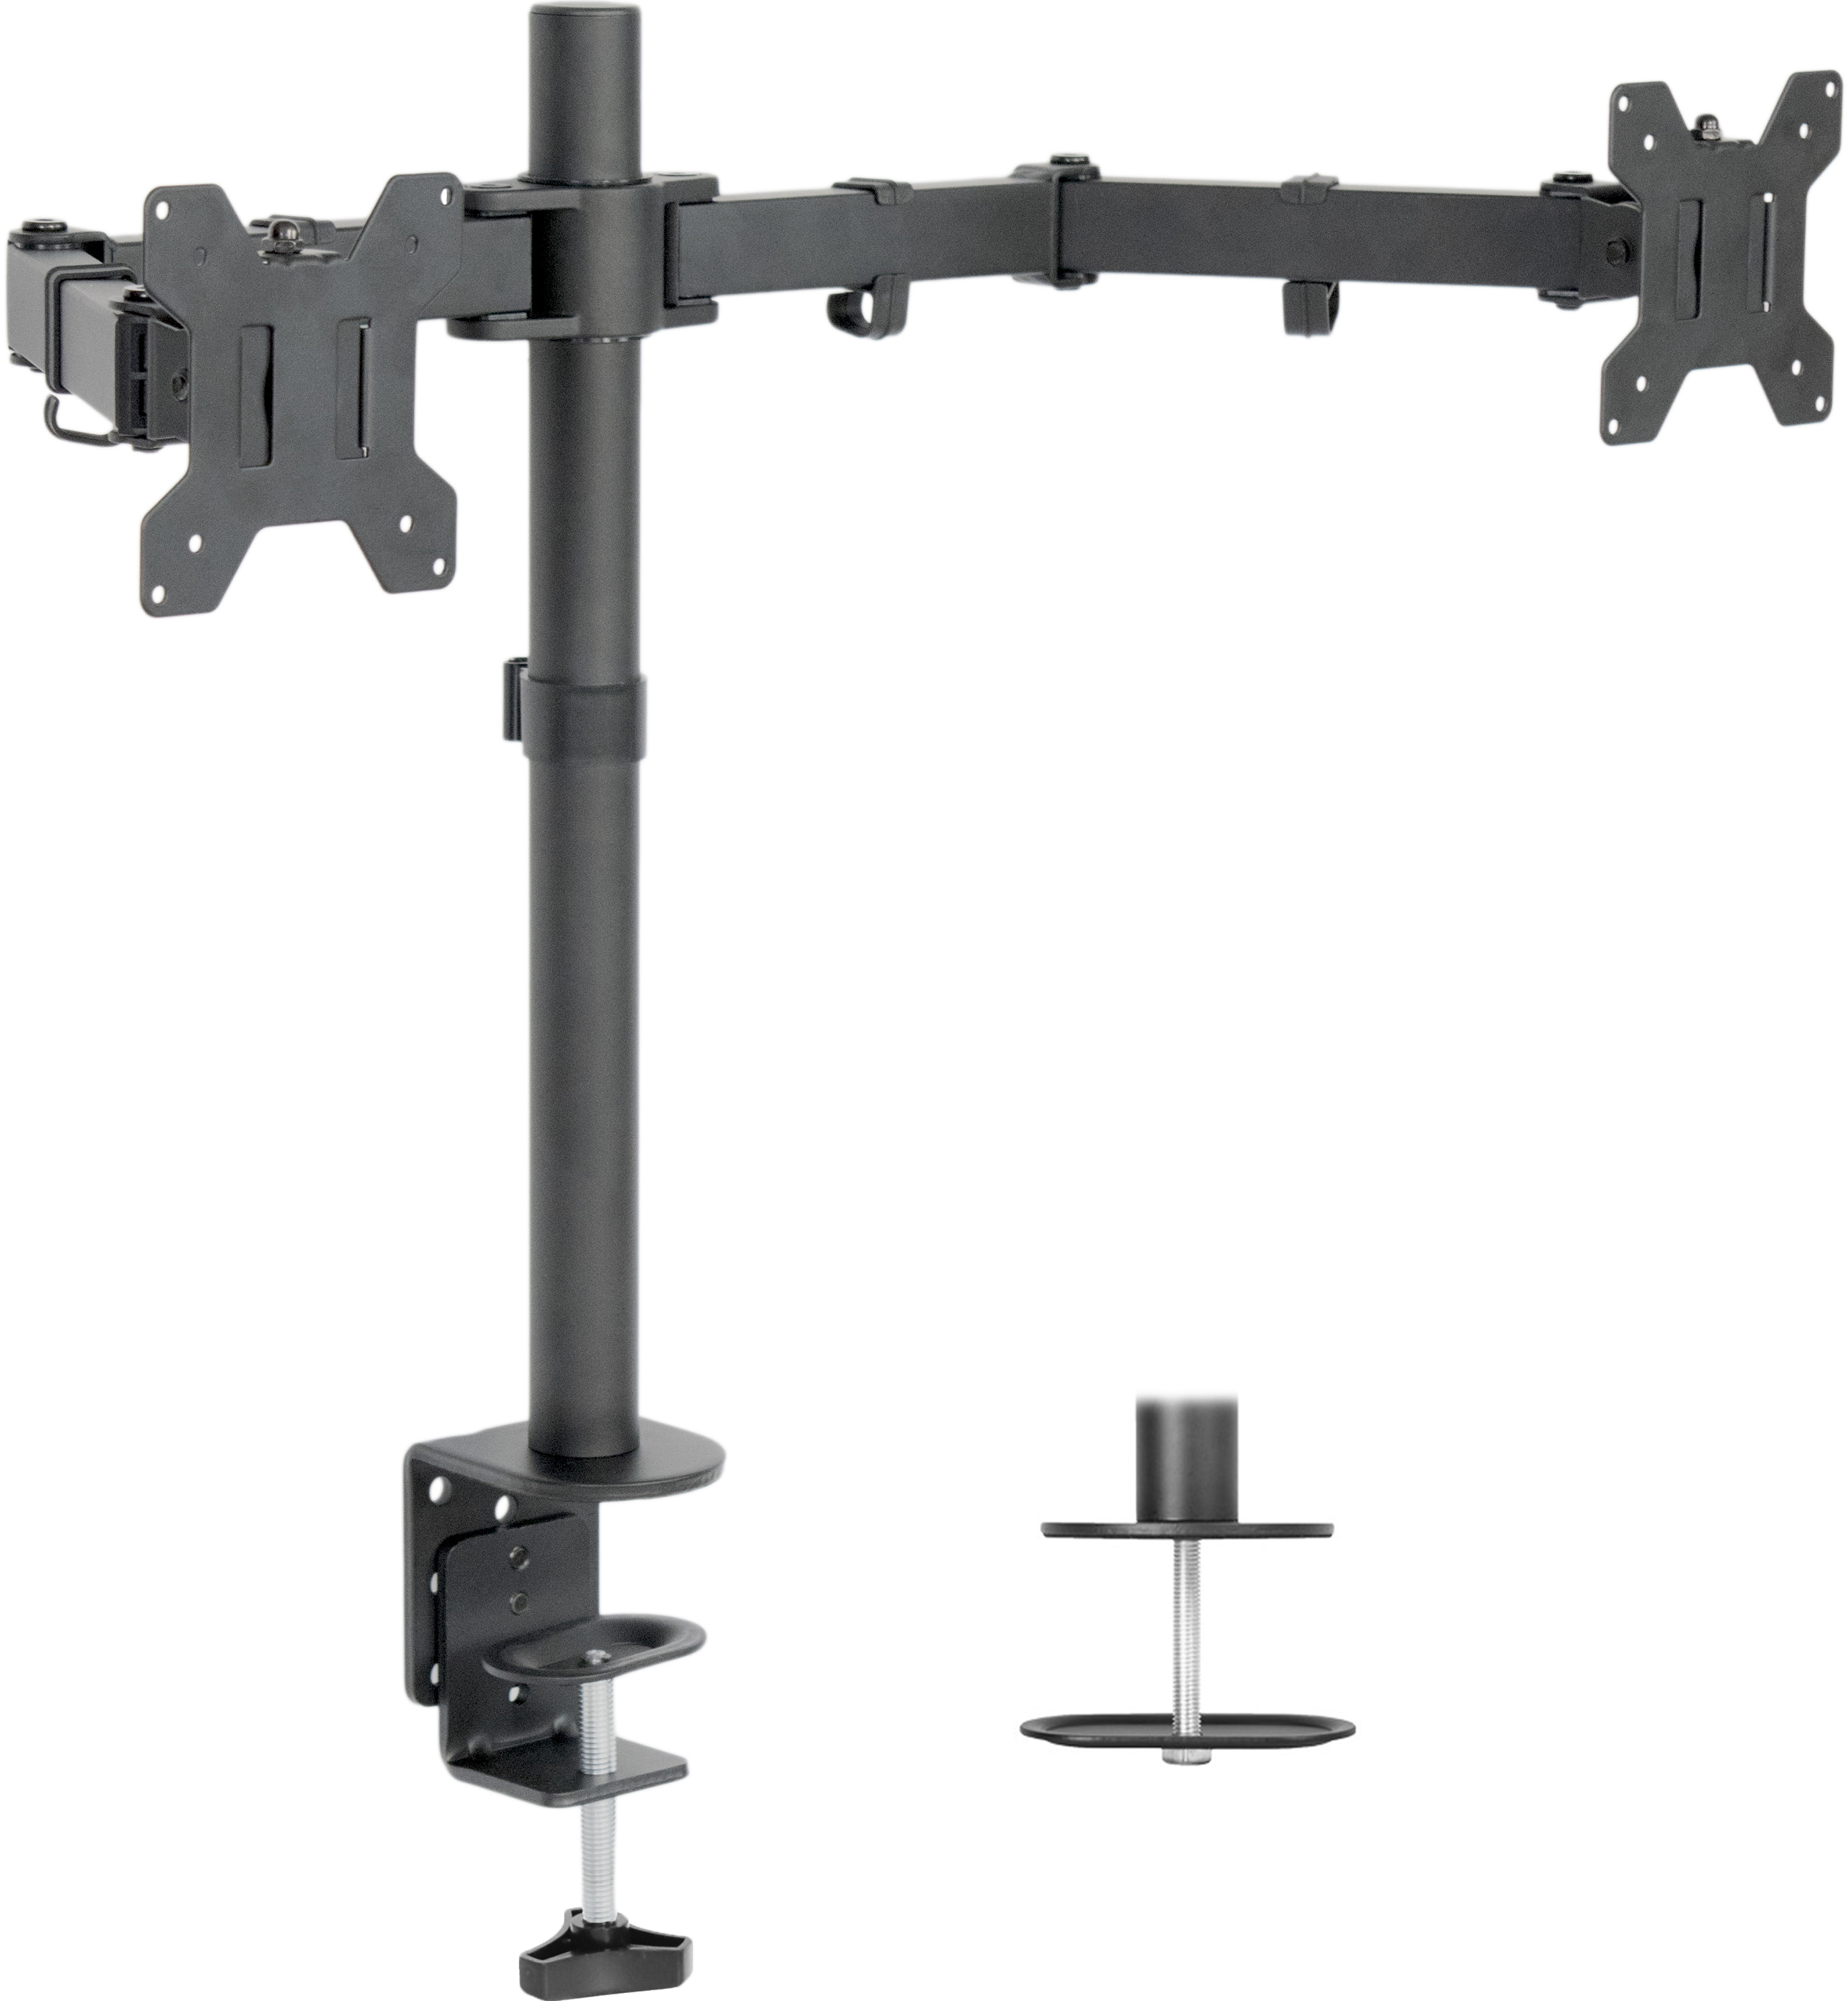 "VIVO Dual LCD Monitor Desk Mount Stand Heavy Duty Fully Adjustable fits 2 Screens up to 27"" ~ (STAND-V002)"